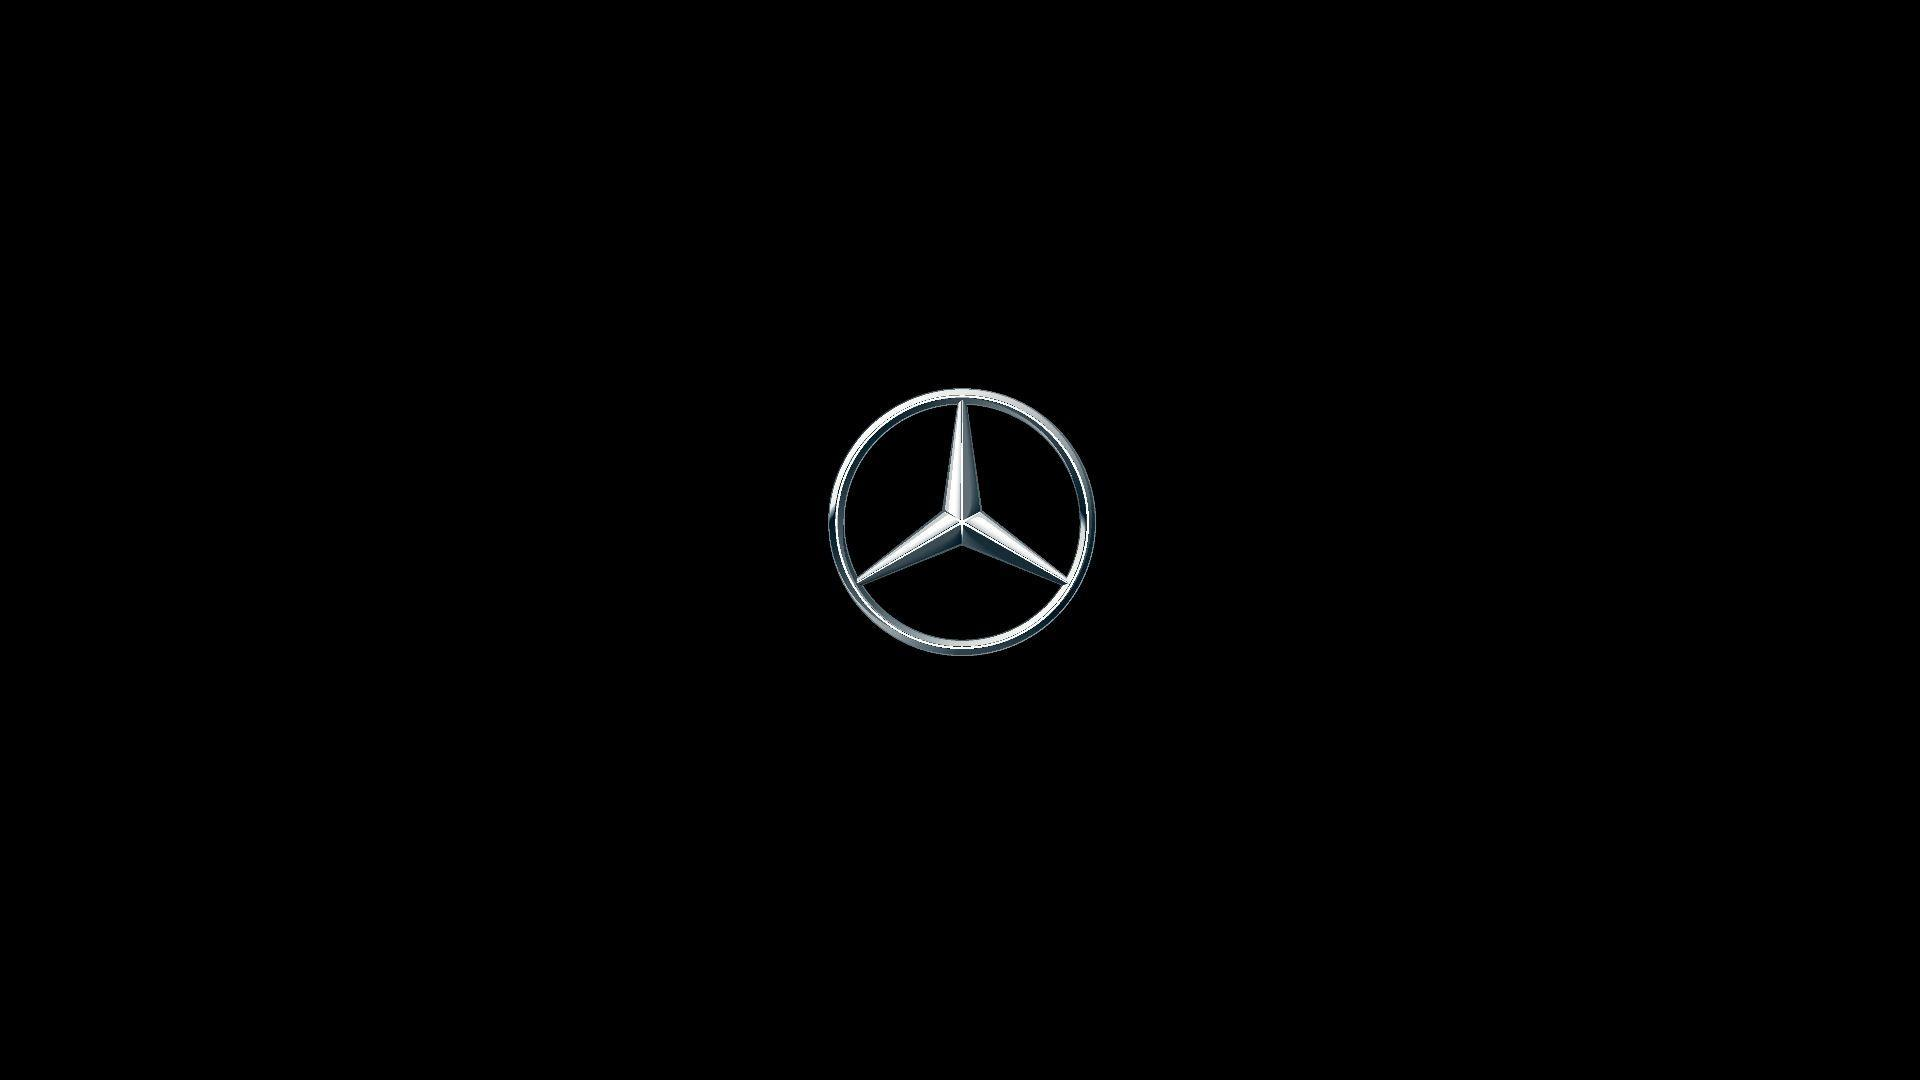 Mercedes-Benz Logo Wallpapers - Top